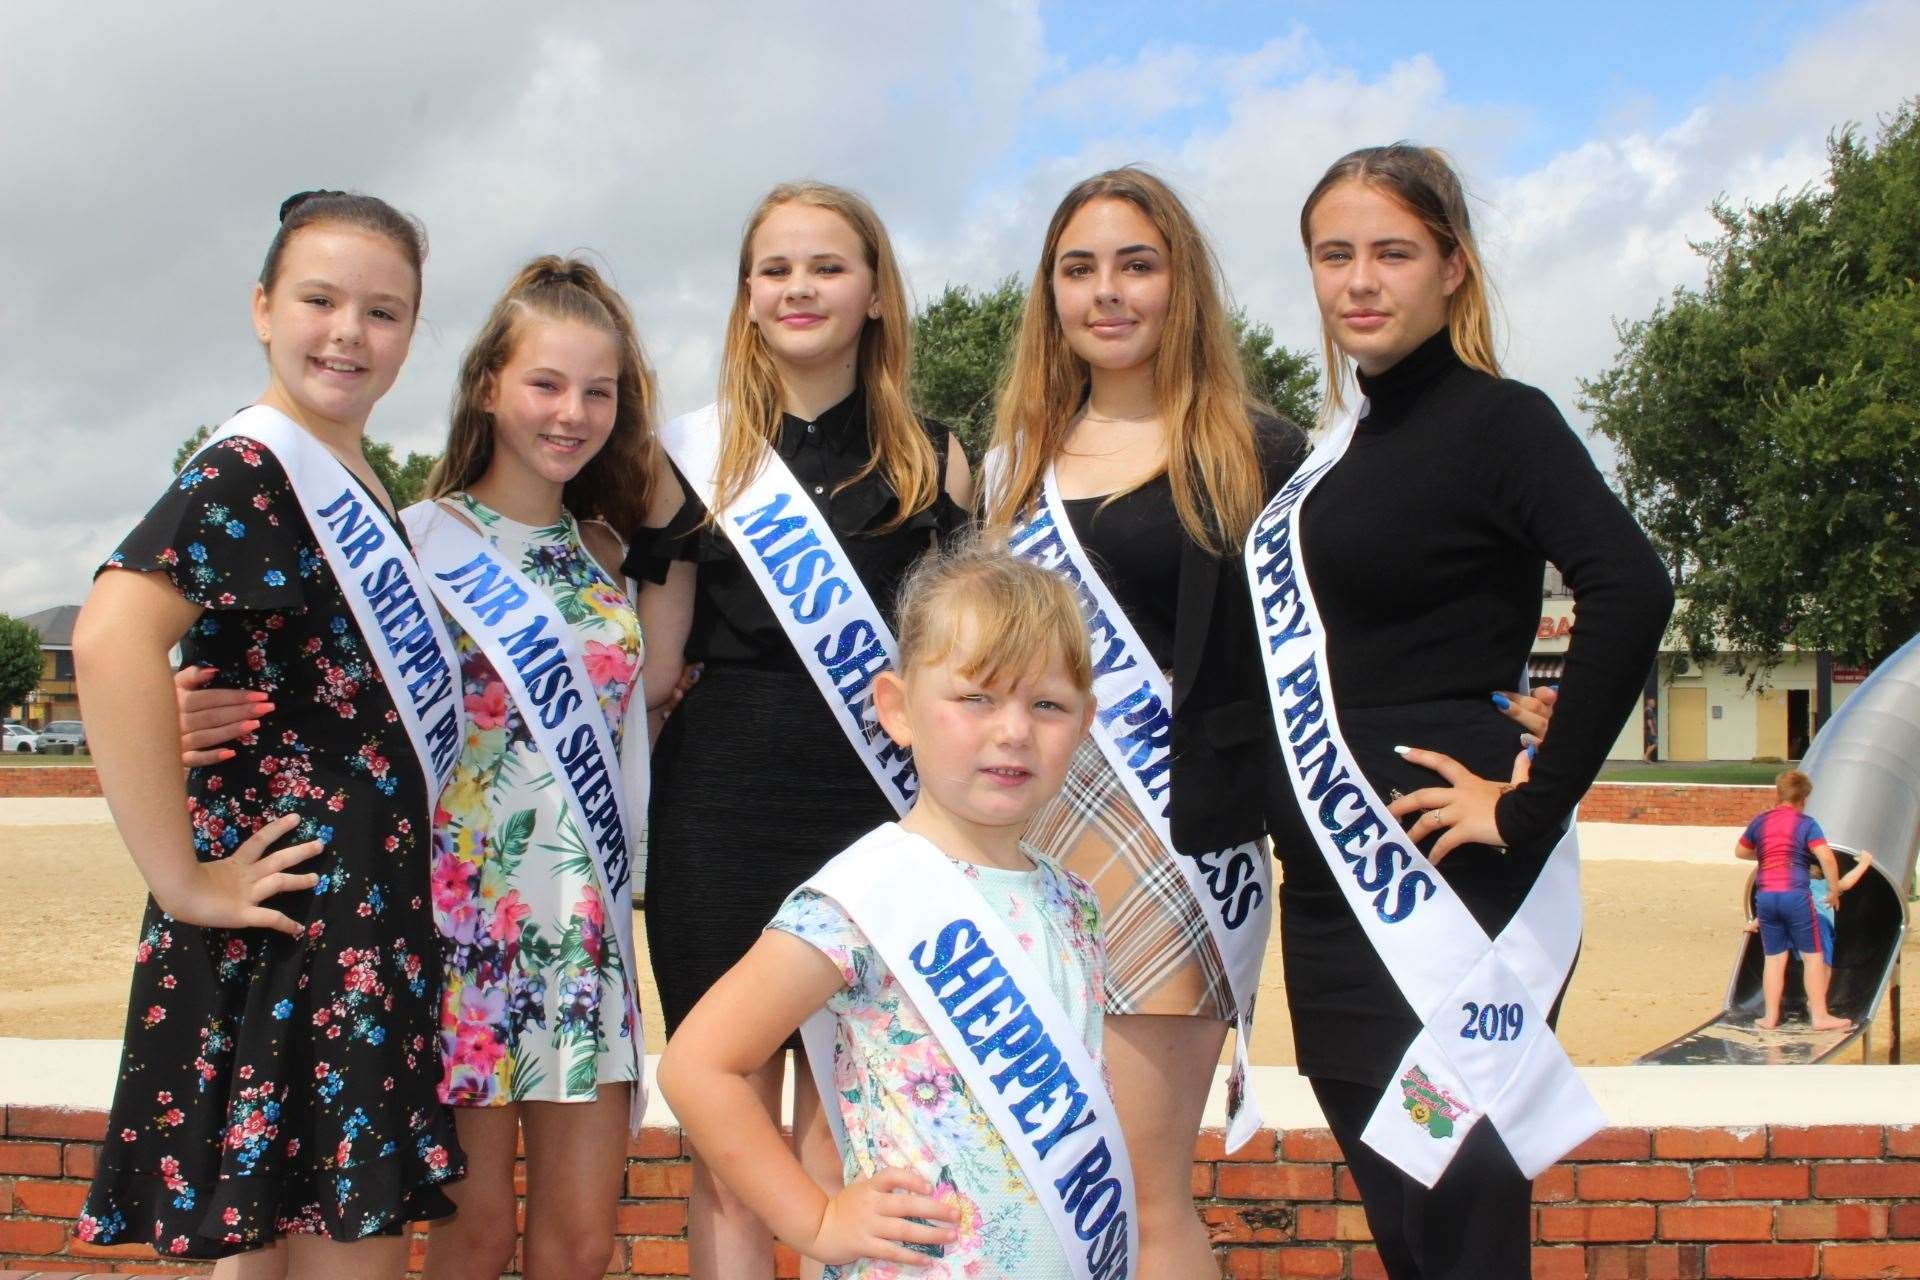 Sheppey carnival girls at the sandpit preparing for their big parade on Saturday. From the left, Lois Kidd, 10, Keira Collins-Kiazia, 13, carnival queen Melody Jackson, 15, Darcey Kidd, 14, and Paige Heaton, 14, with Sheppey Rosebud Evie Bowes, 5, in the front. Picture: John Nurden (15016565)